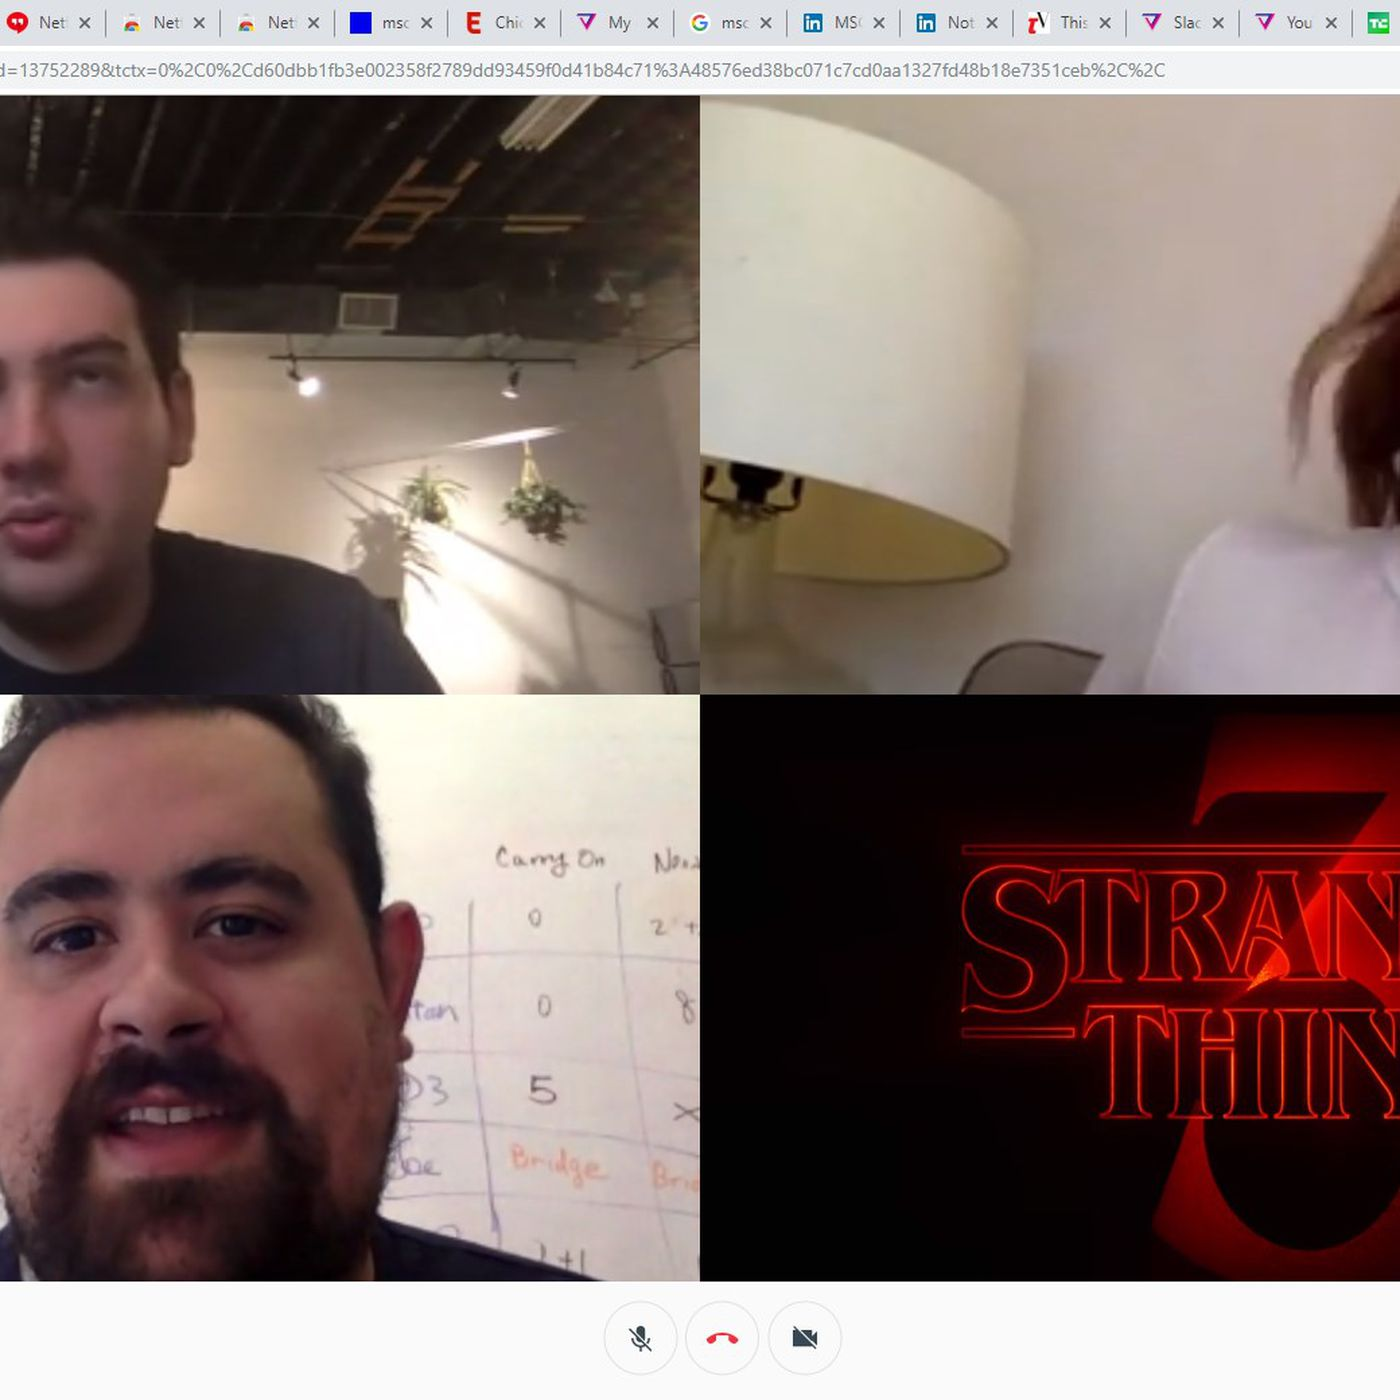 This Chrome extension lets you disguise Netflix as a Hangout to